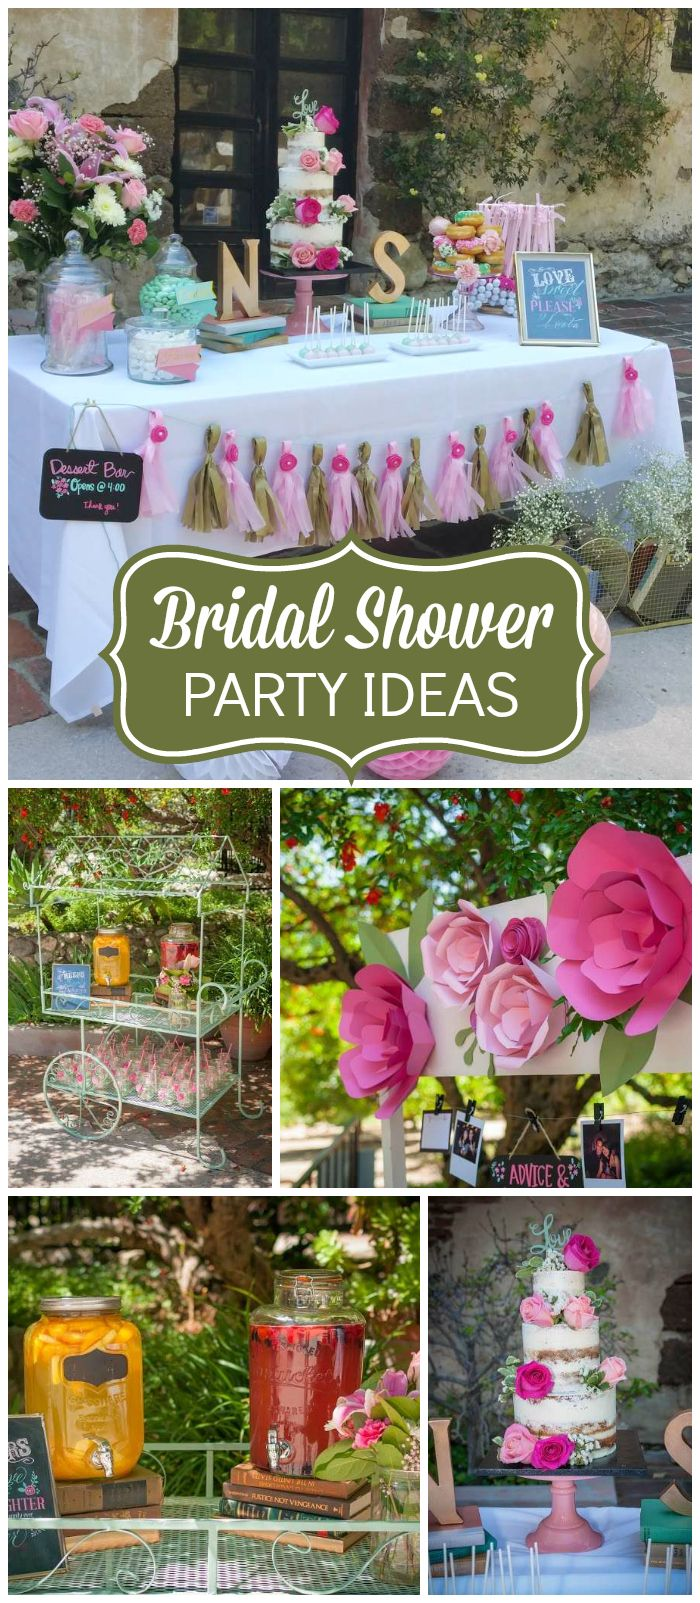 bridalwedding shower happily ever after in 2018 bridal shower ideas pinterest bridal shower bridal and wedding